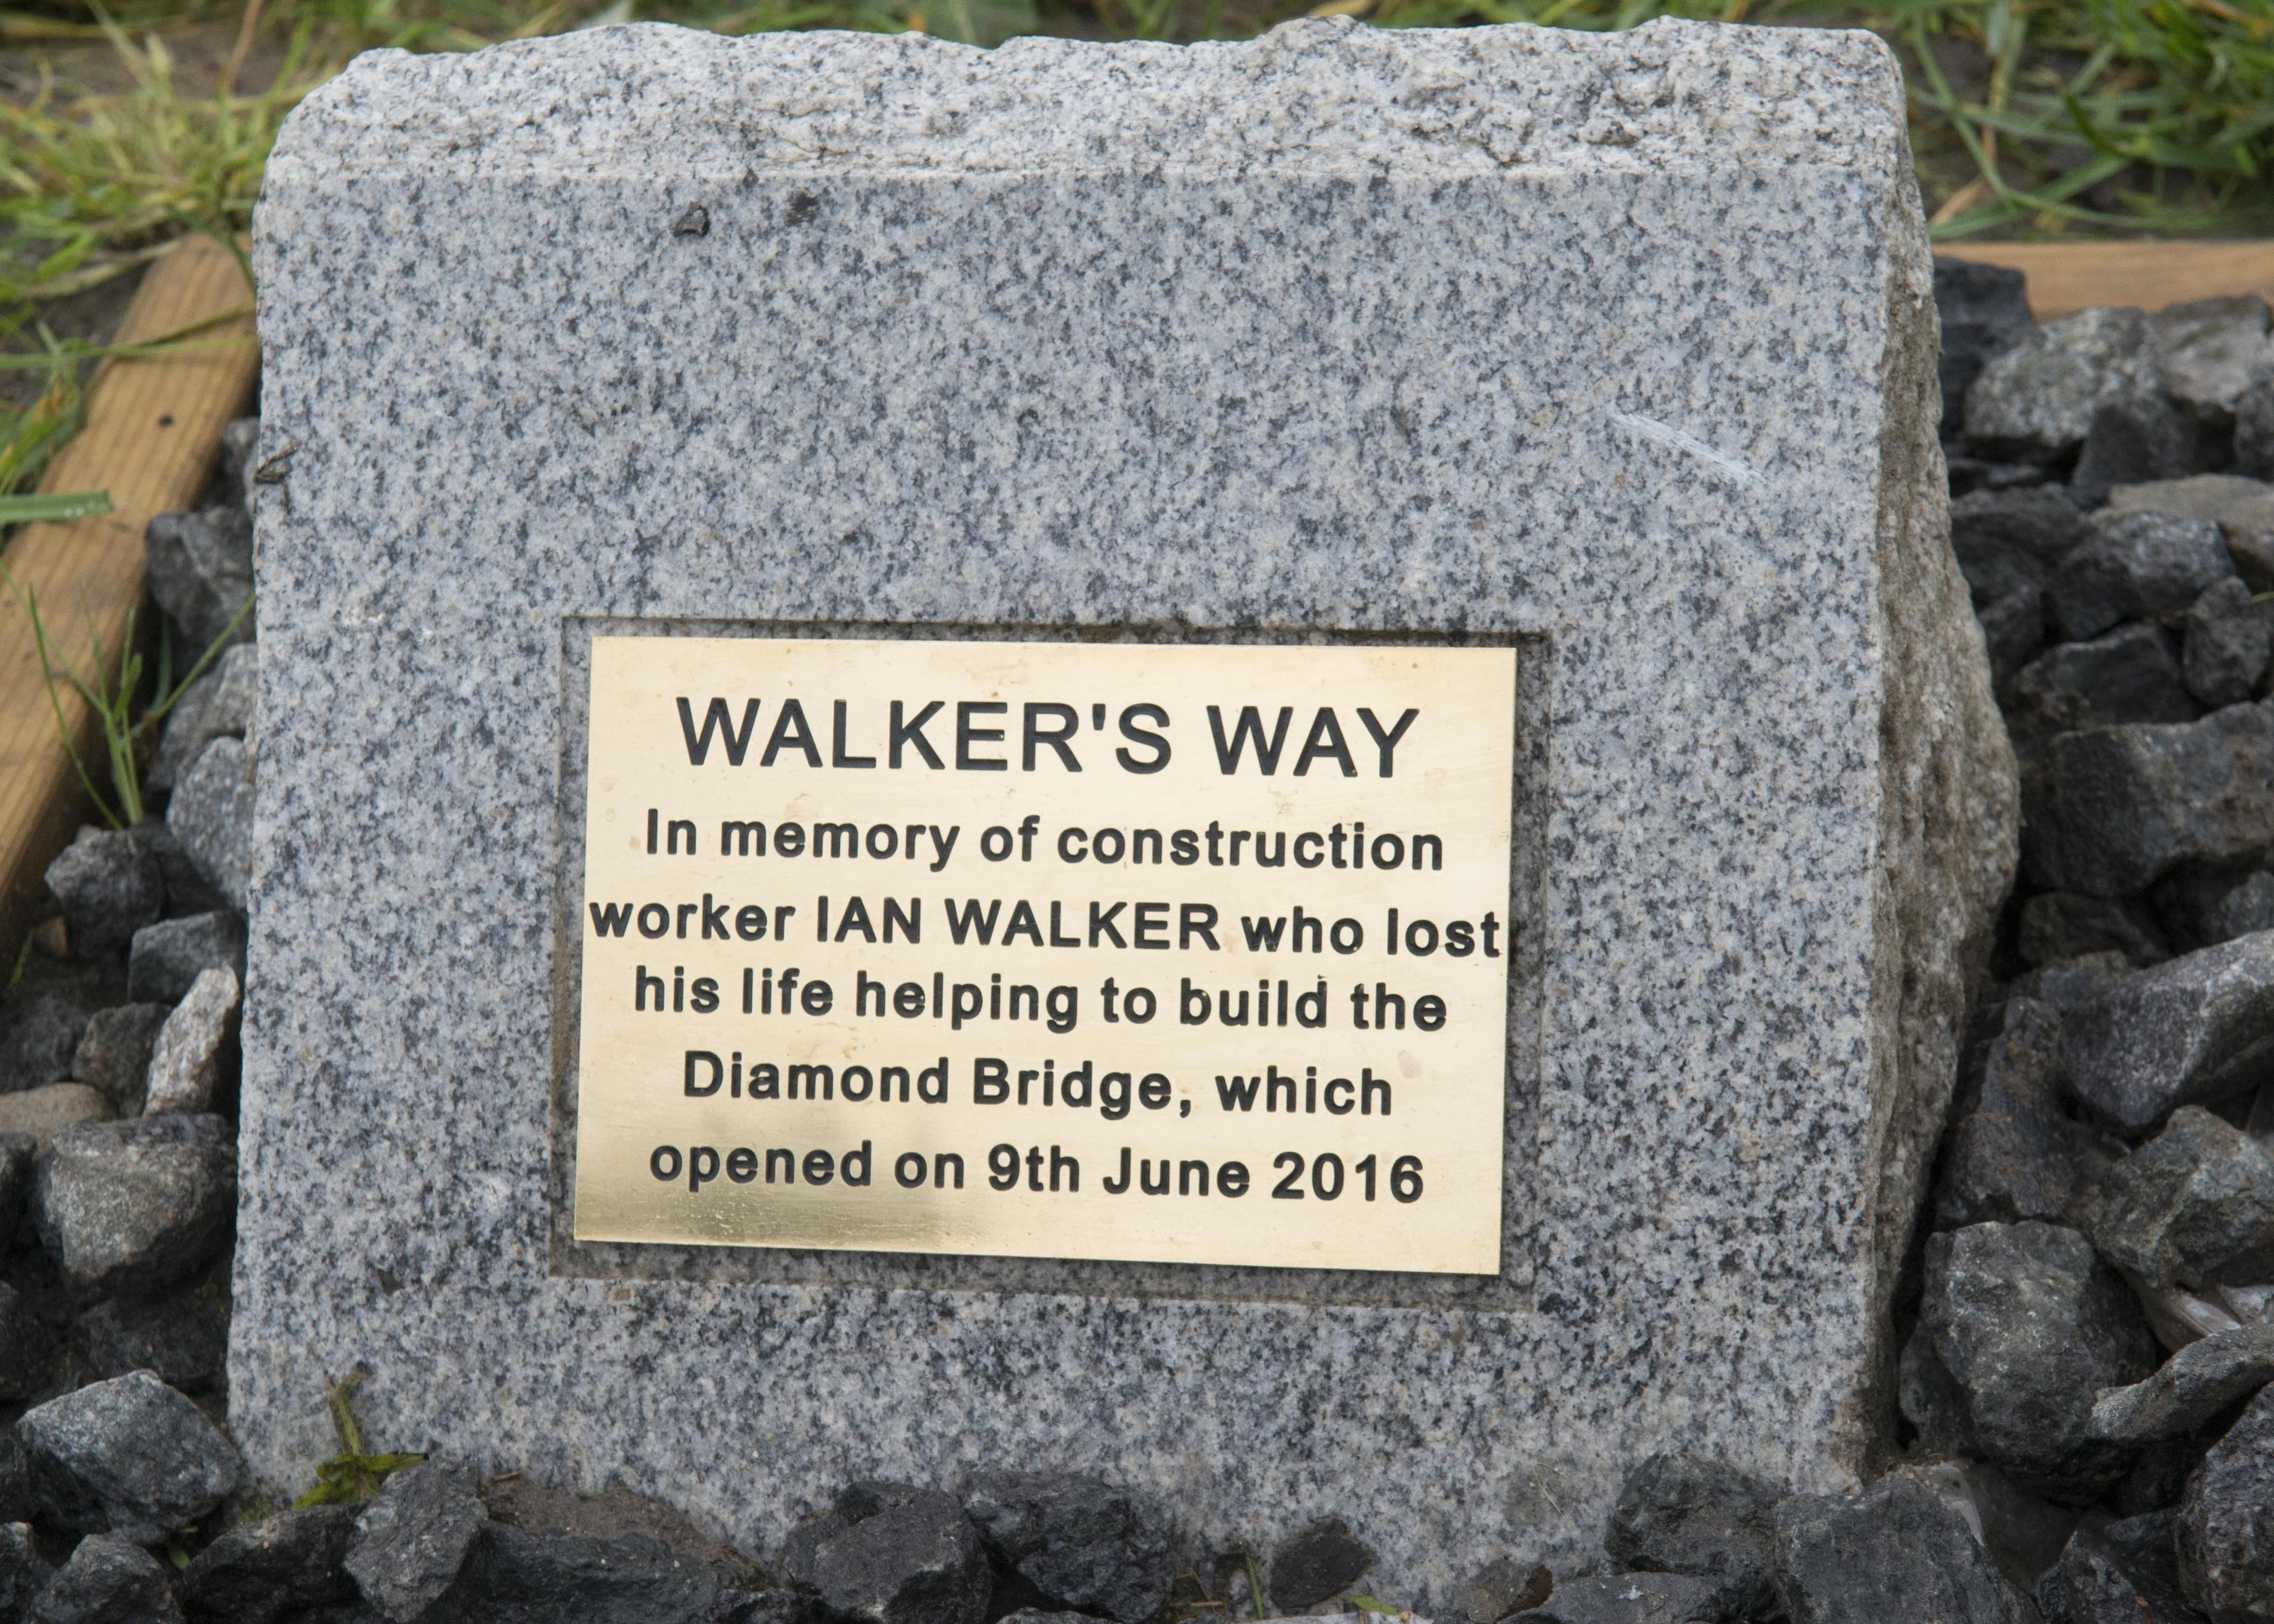 The Walker's Way tribute.